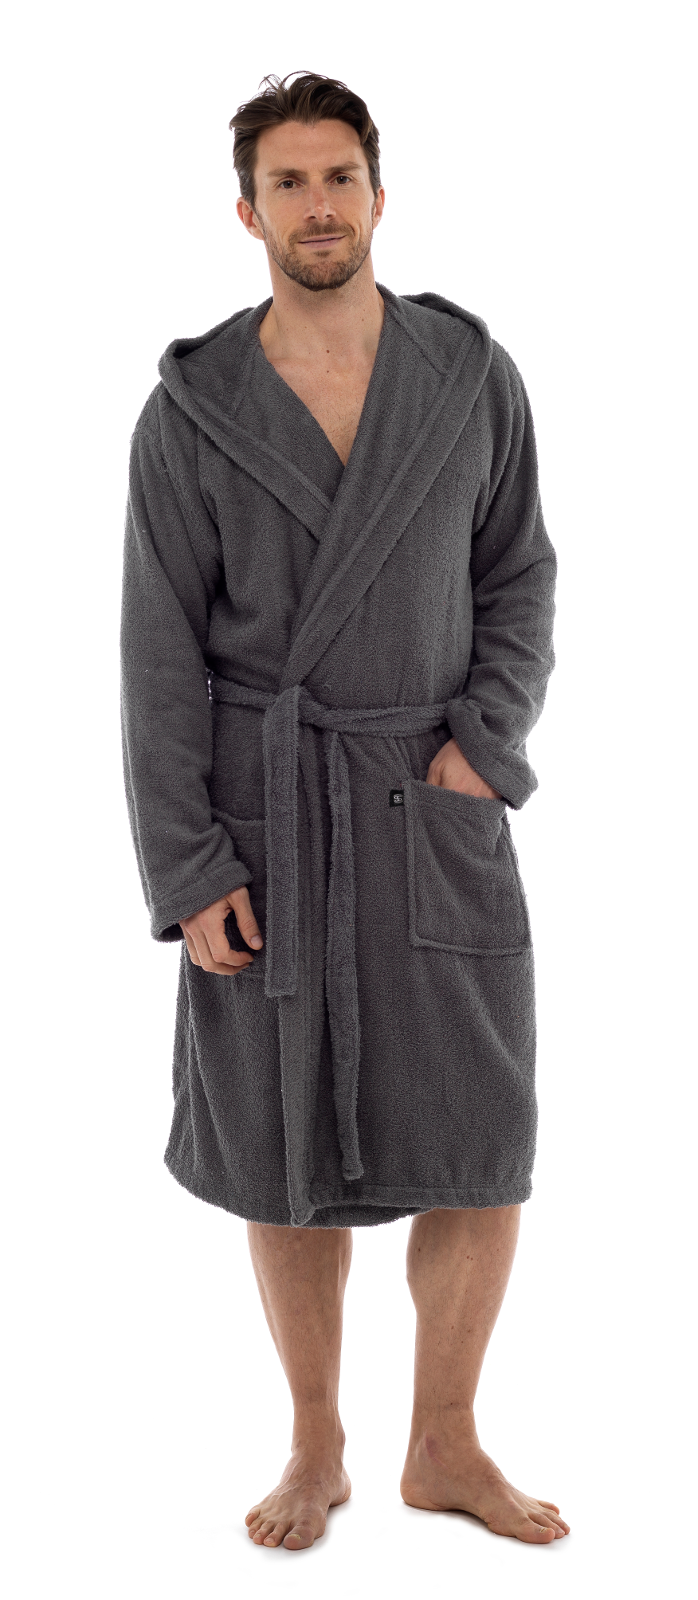 mens pure 100 cotton luxury hooded terry towelling bath robes dressing gown siz ebay. Black Bedroom Furniture Sets. Home Design Ideas